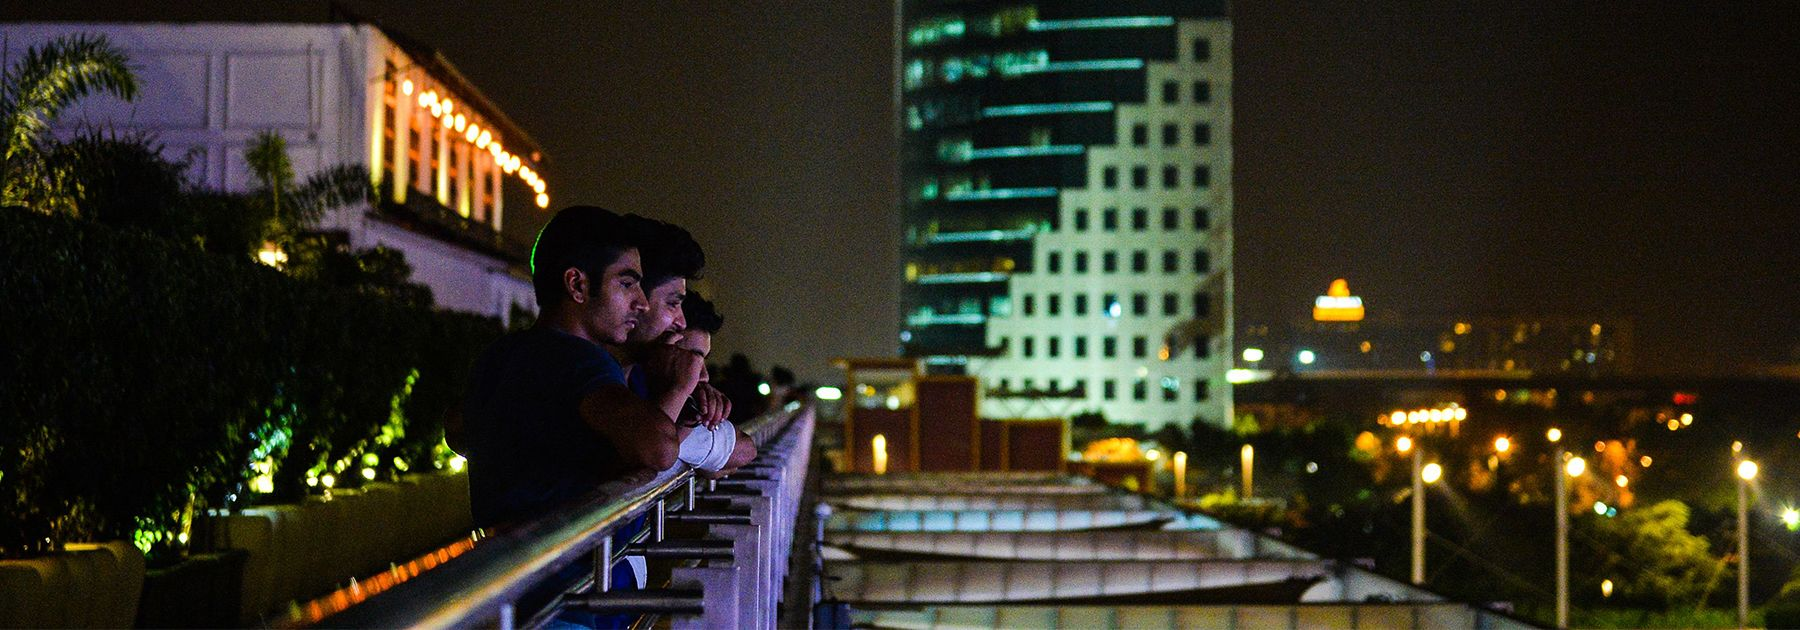 People look over a mall in the DLF Cyber City area of Gurgaon. (CHANDAN KHANNA/AFP/Getty Images)